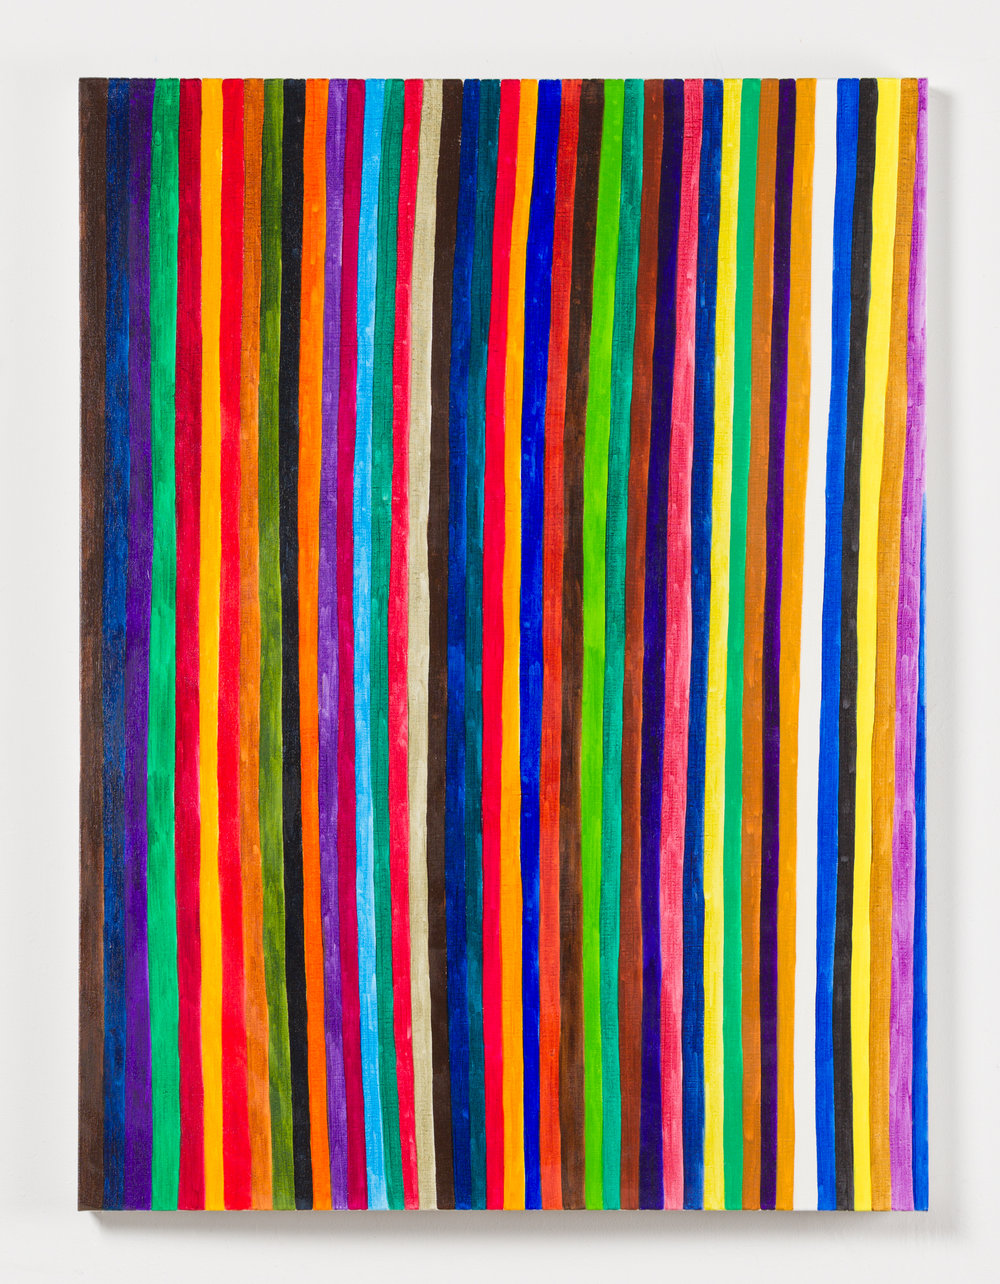 Renee Cosgrave, Lines,  Transparent Colours (Small I) , 2016, oil on linen, 61 x 51cm